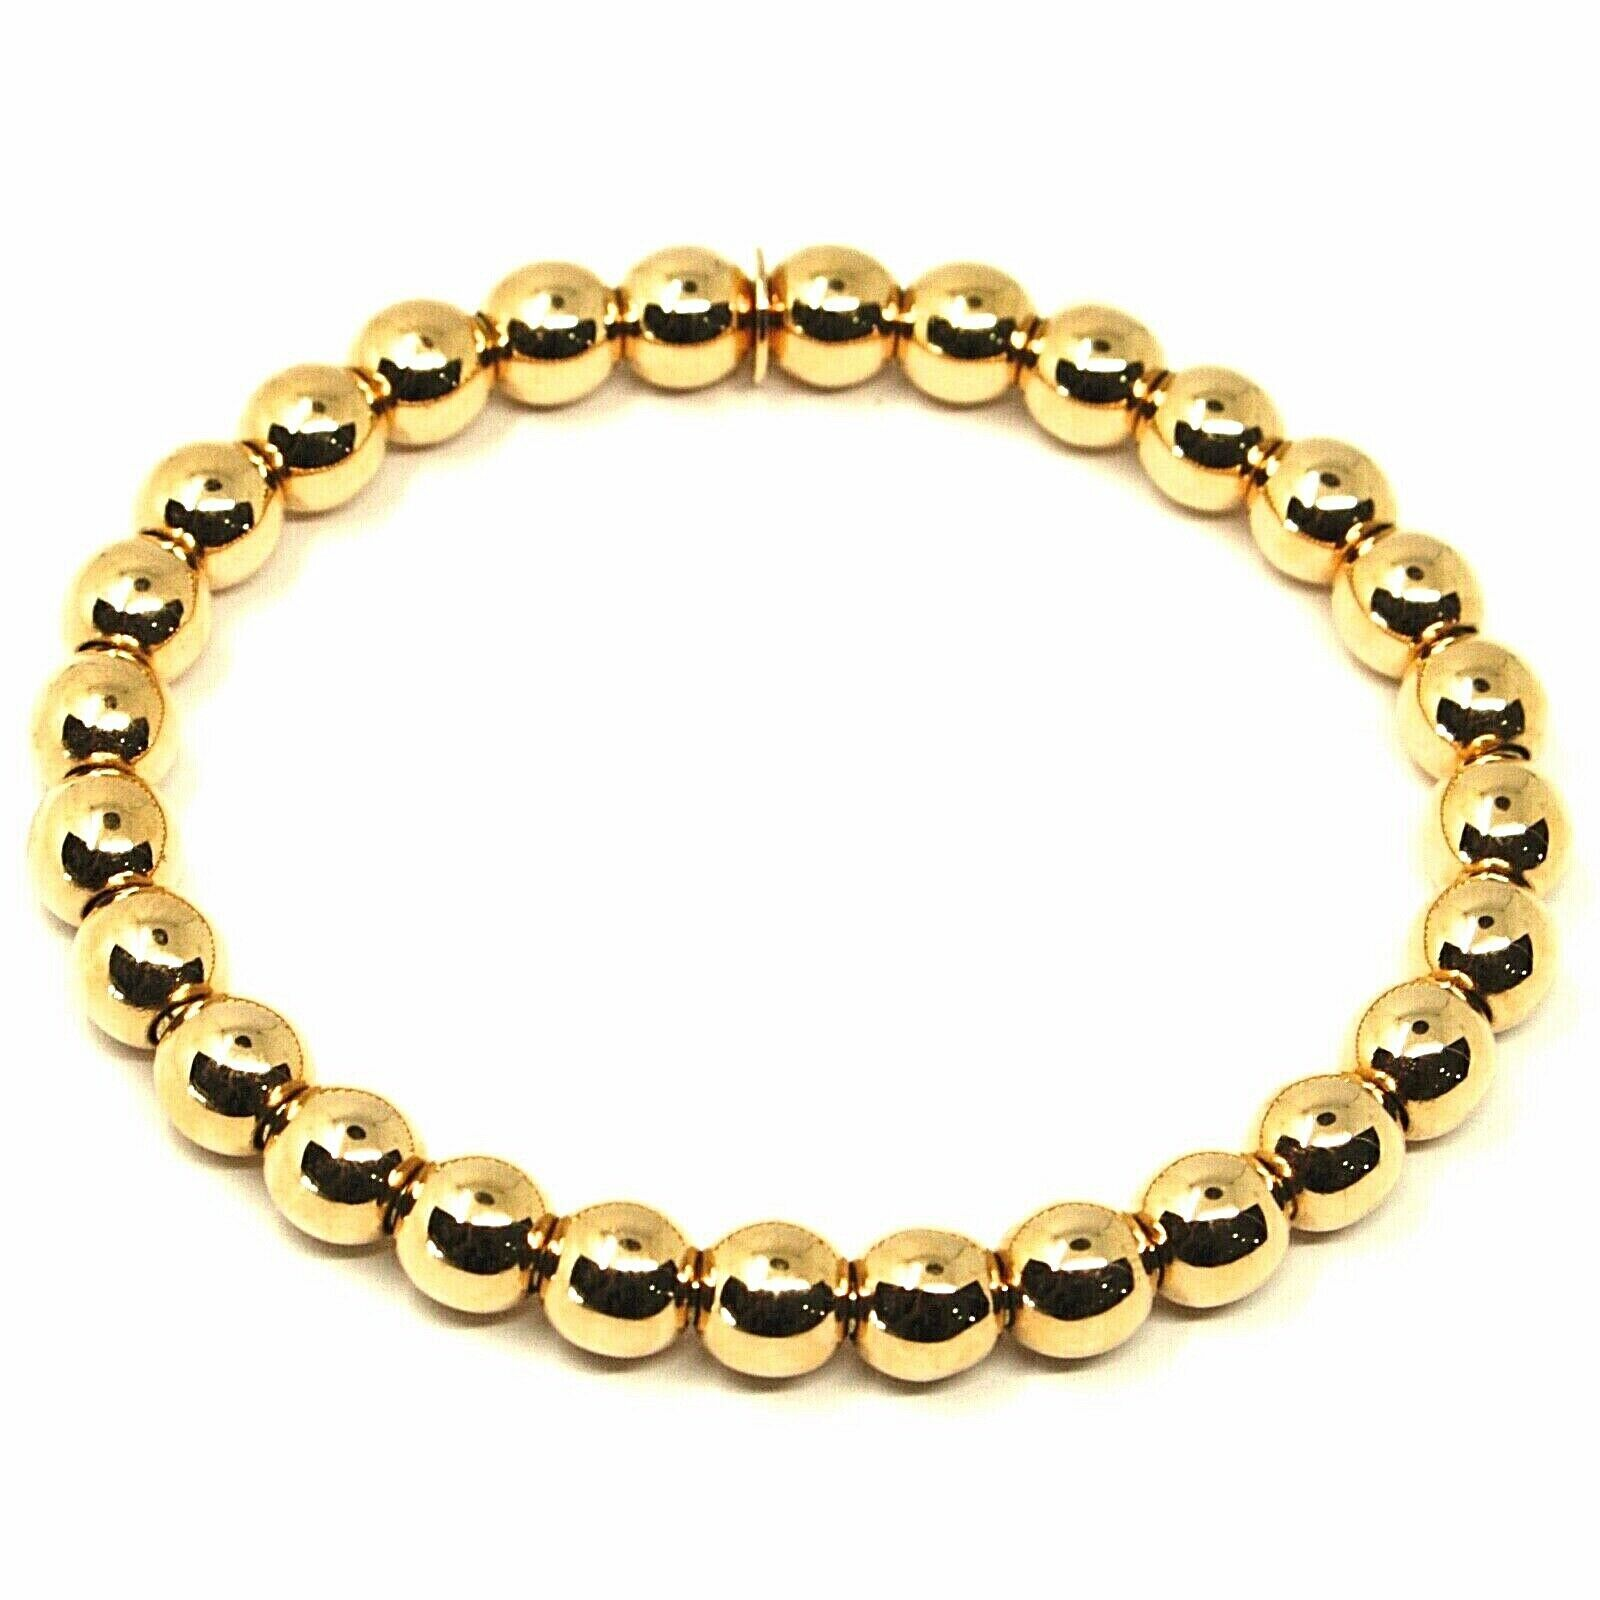 18K YELLOW GOLD BRACELET, SEMIRIGID, ELASTIC, BIG 6 MM SMOOTH BALLS SPHERES